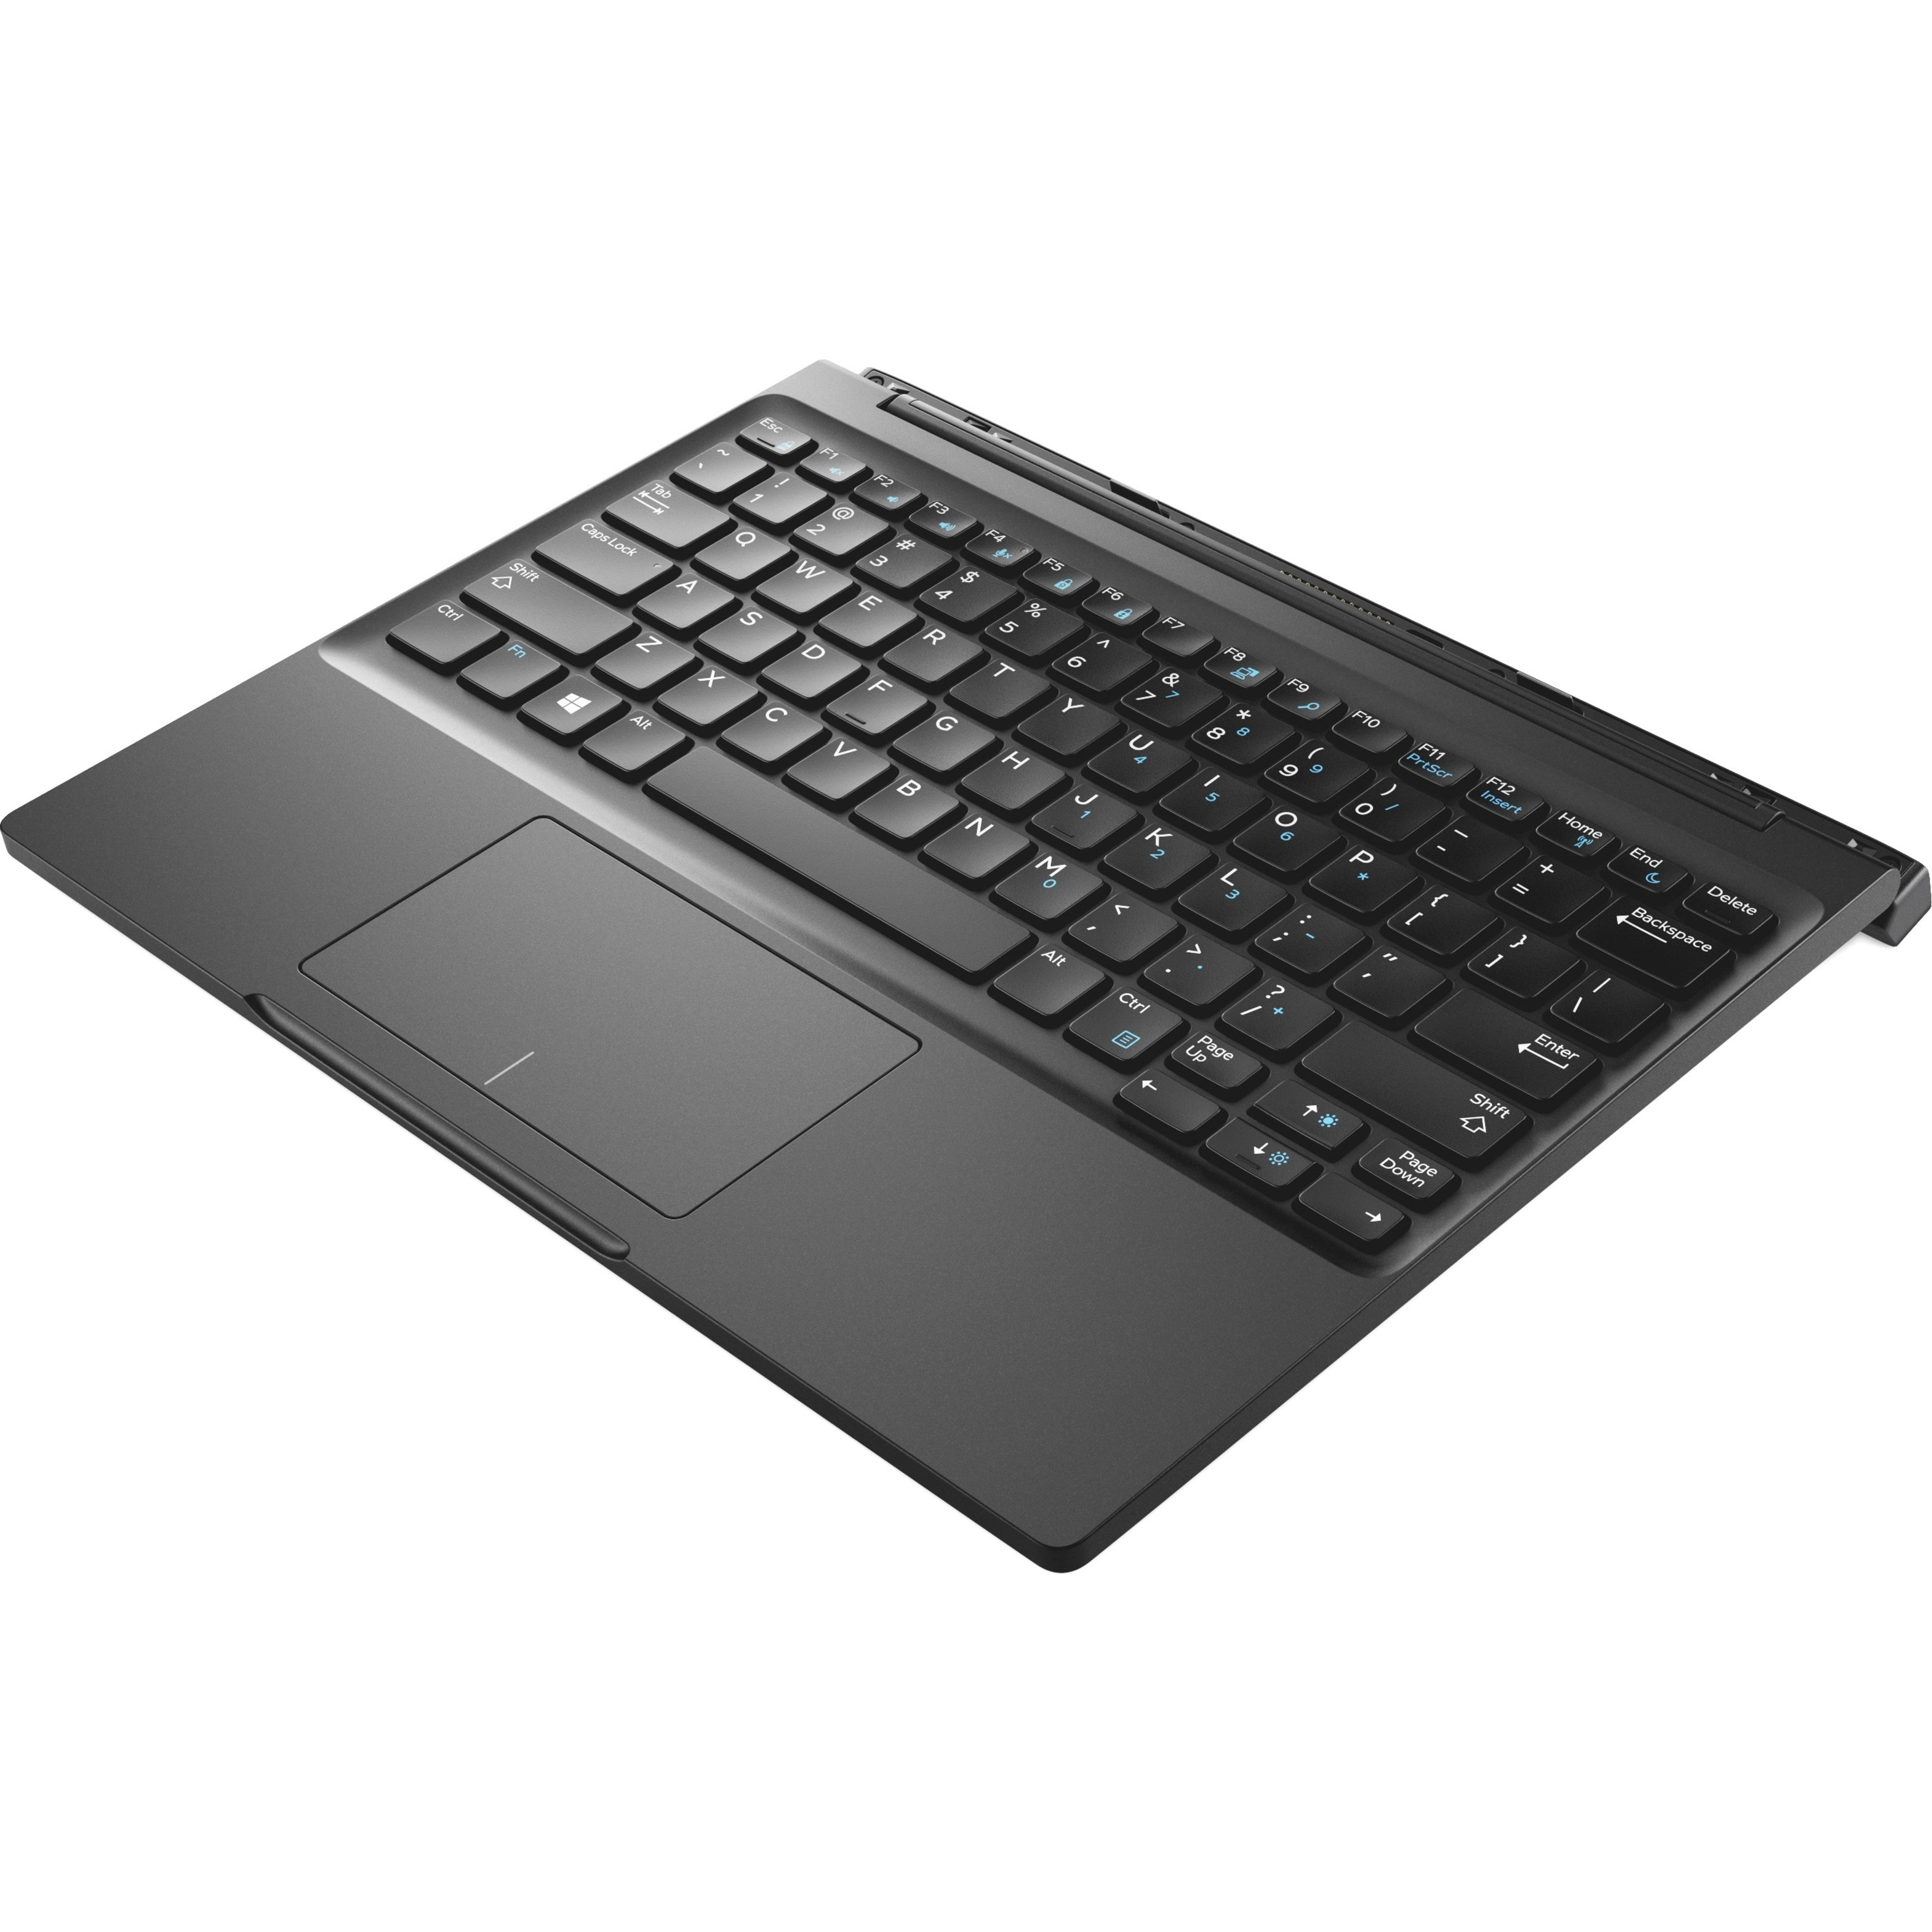 Dell Latitude 7285 Productivity Keyboard - K17M - Docking Connectivity -  Docking Port InterfaceTouchPad - Compatible with Tablet, Notebook (Windows)  -